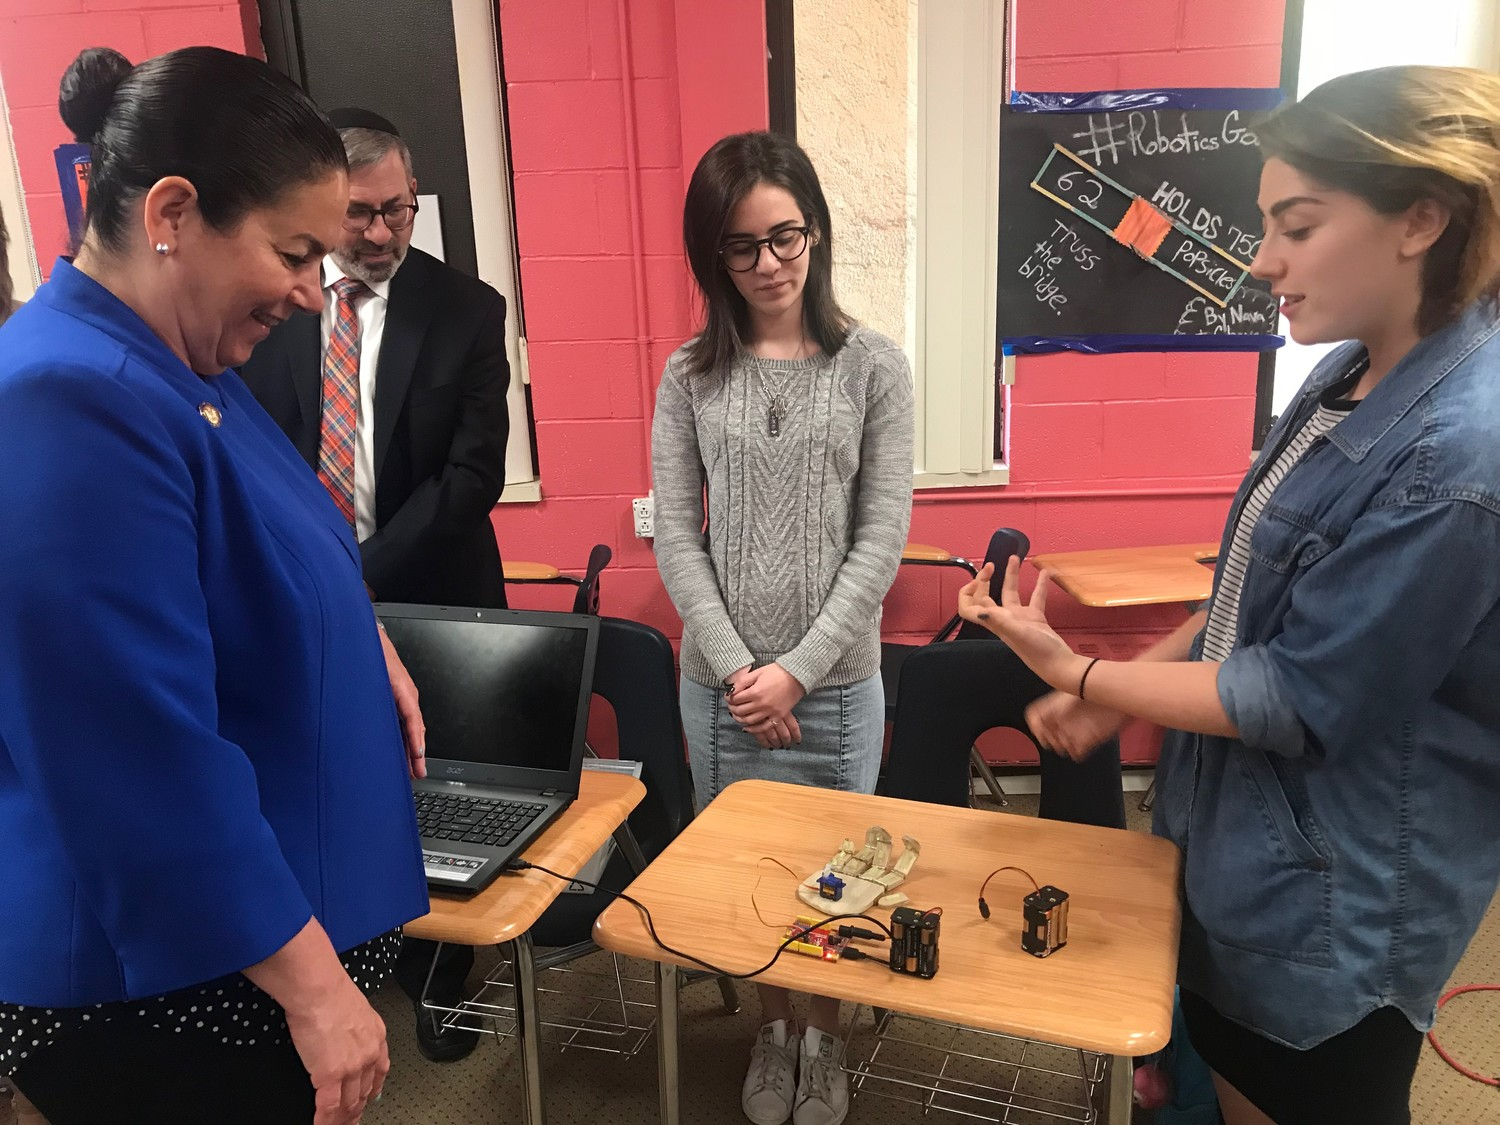 Assemblywoman Stacey Pheffer Amato, far left, and Rabbi Zev Friedman watched Leah Rubin, far right, show the robotic hand that she and Tal Gaon, center, built.